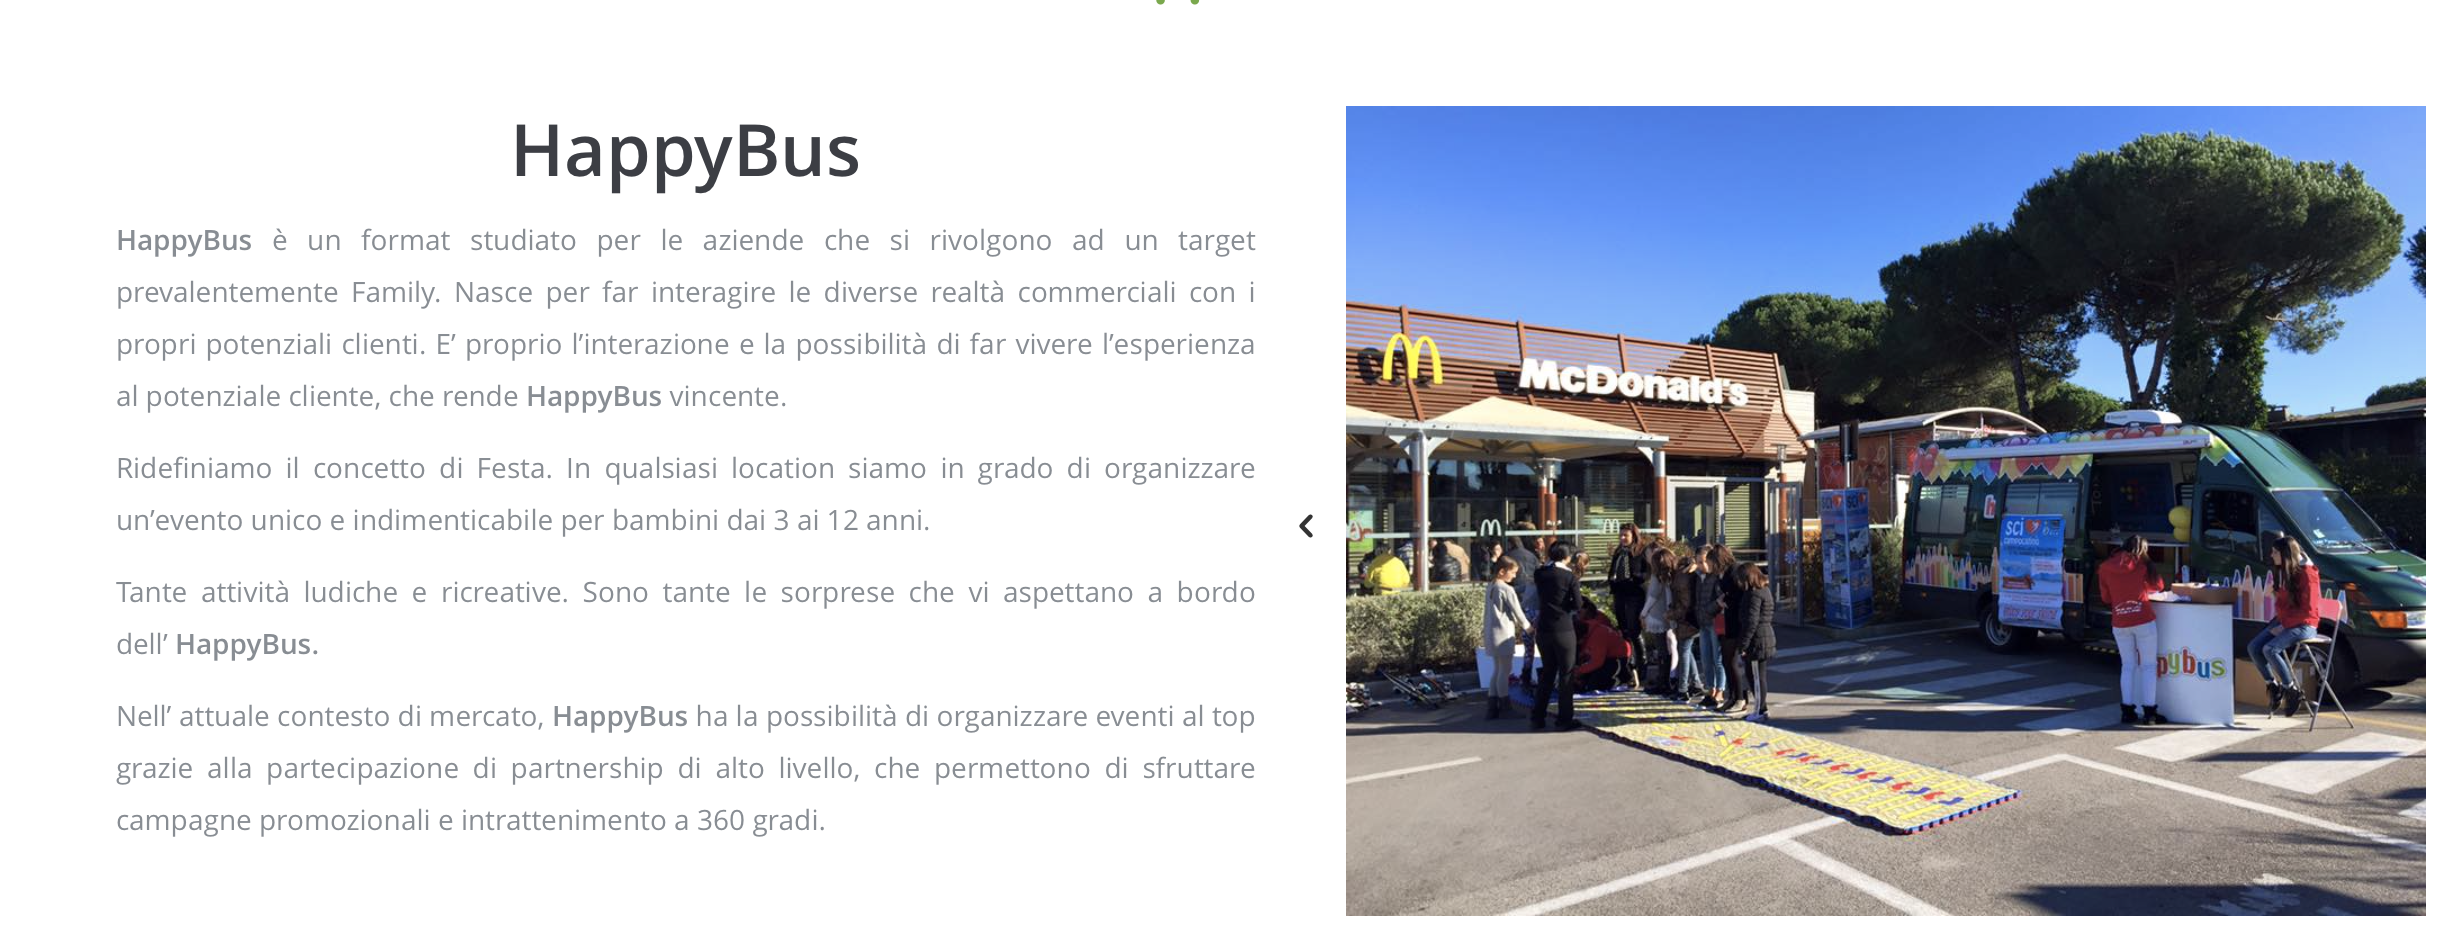 MC DONALD'S HAPPY BUS